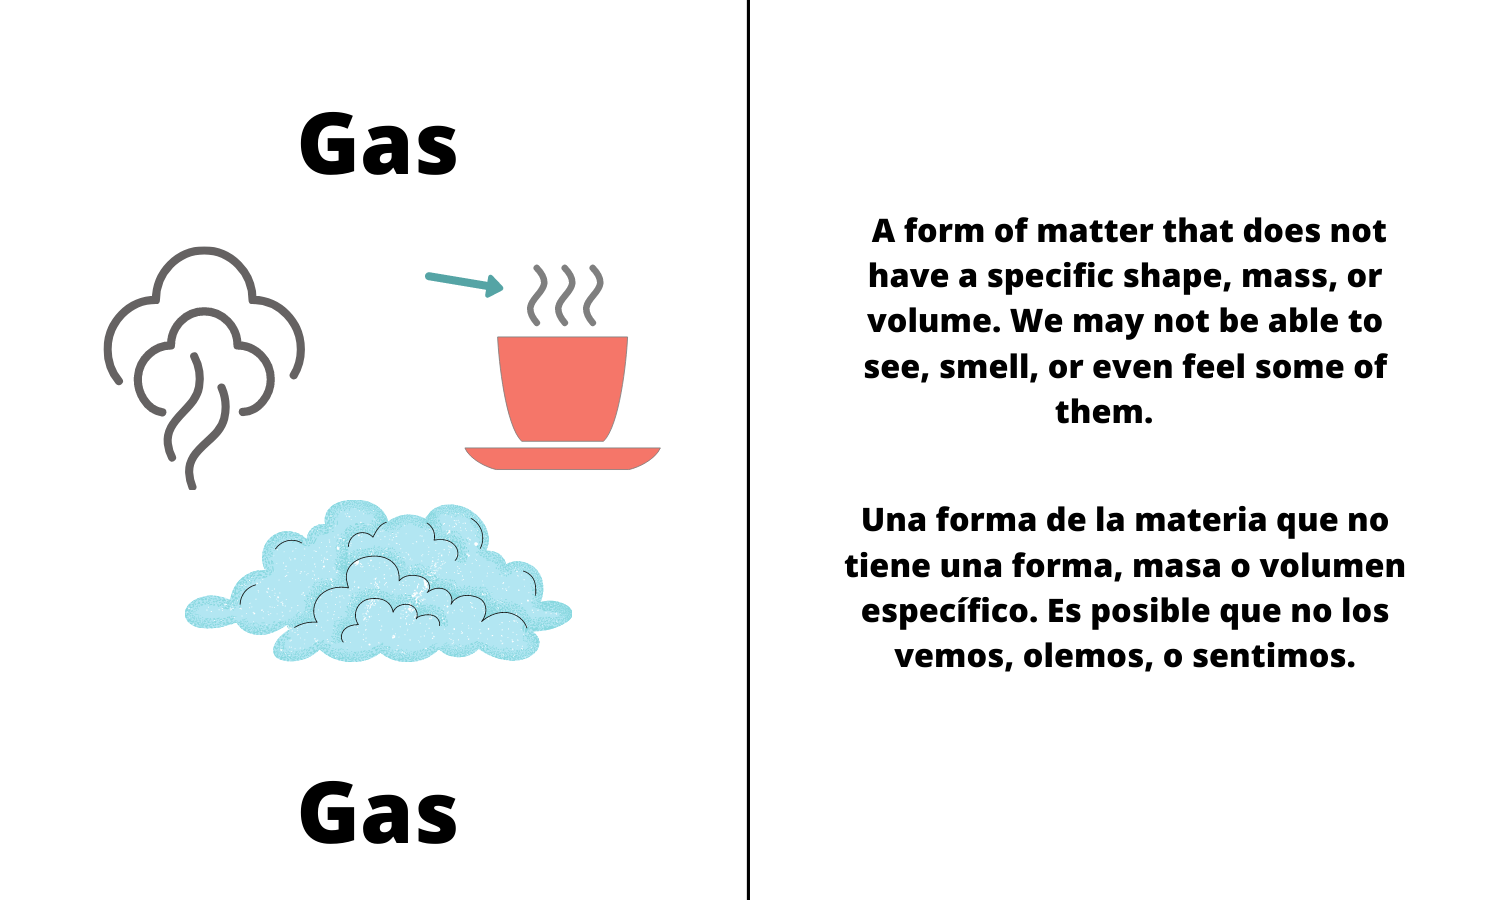 Gas. A form of matter that does not have a specific shape, mass, or volume. We may not be able to see, smell, or even feel some of them. Gas. Una forma de la materia que no tiene una forma, masa o volumen específico. Es posible que no los vemos, olemos, o sentimos.